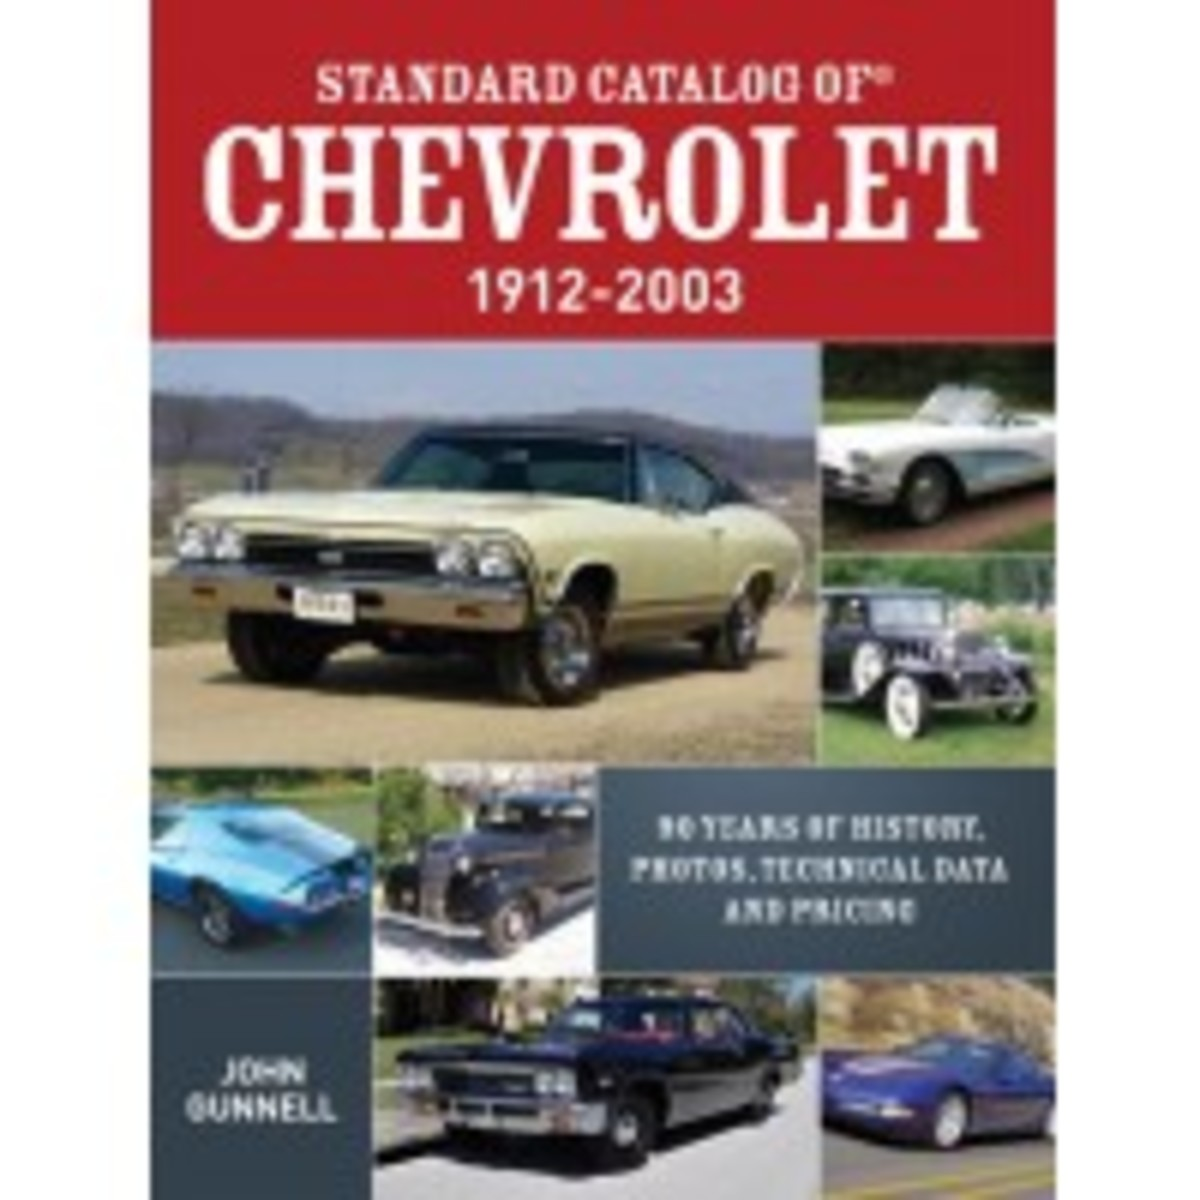 The Standard Catalog of Chevrolet